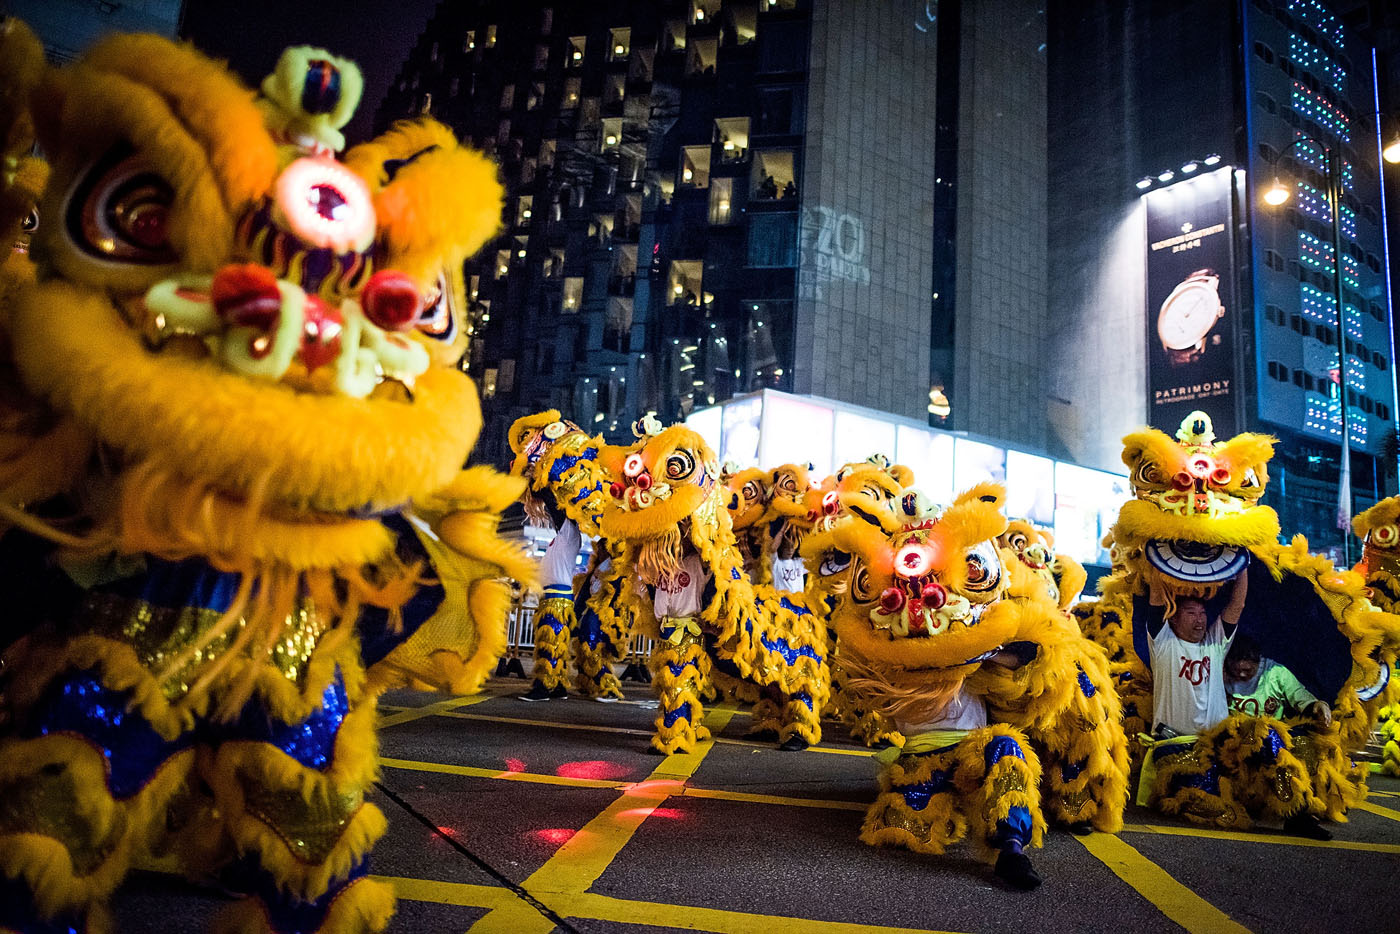 At The 2015 Cathay Pacific International Chinese New Year Night Parade